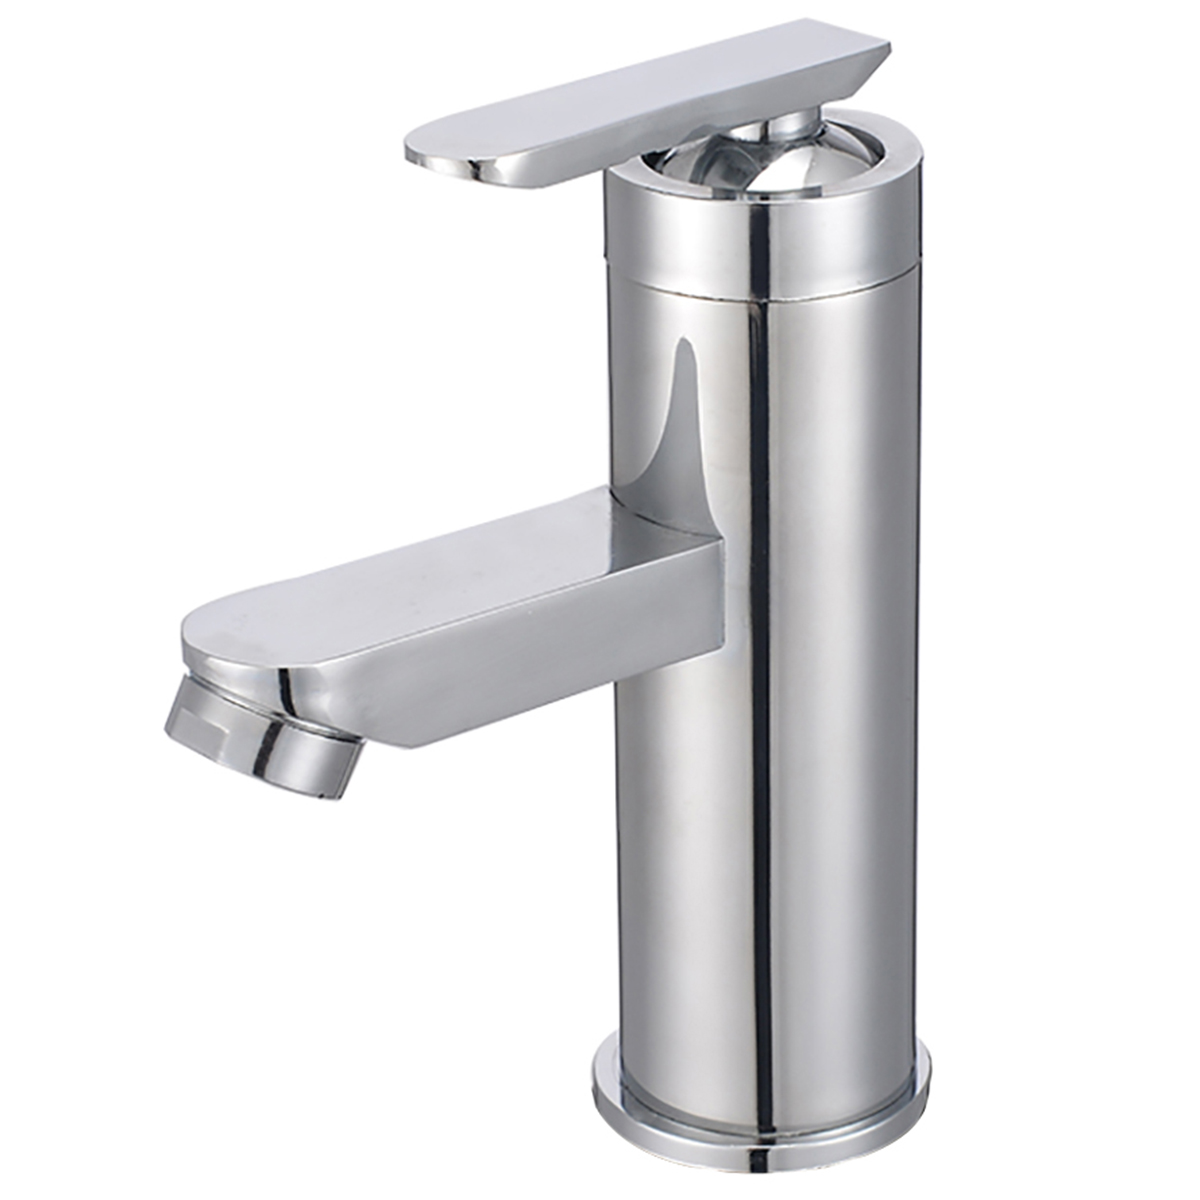 Single Handle Sink Bathroom Basin Faucet Cold Hot Mixer Tap Kitchen Faucet Waterfall for Bathroom Kitchen Faucet